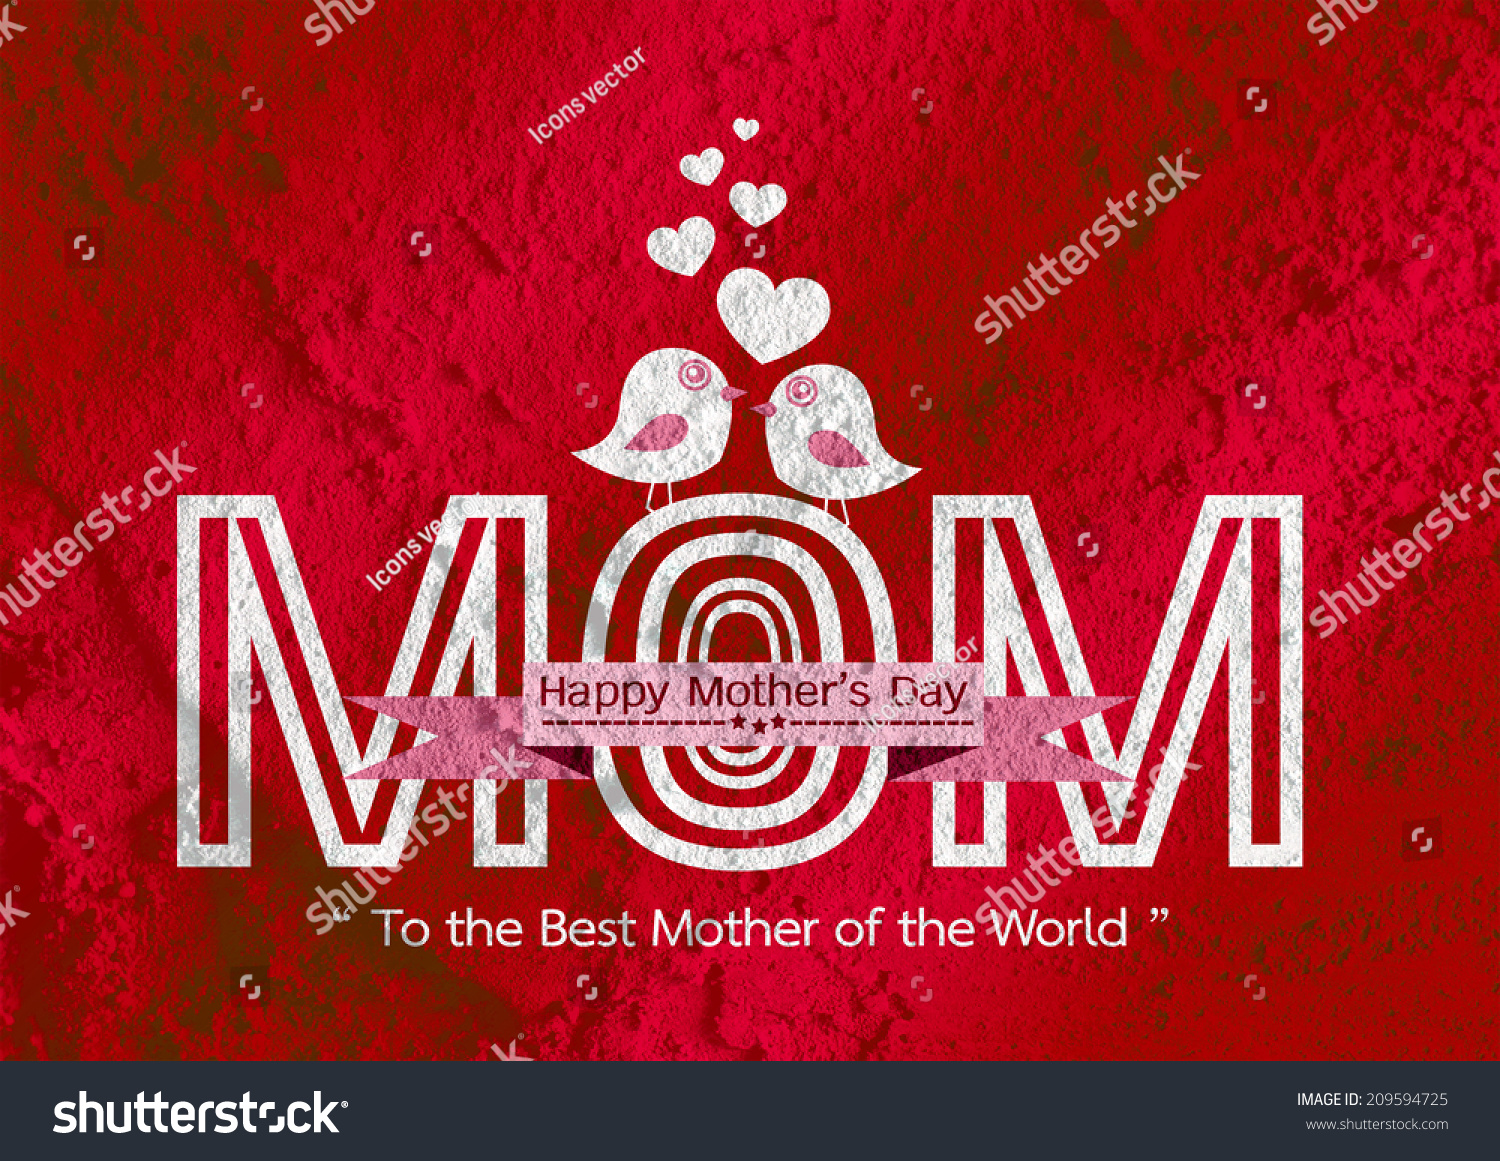 Happy Mothers Day Greeting Card Design Stock Illustration 209594725